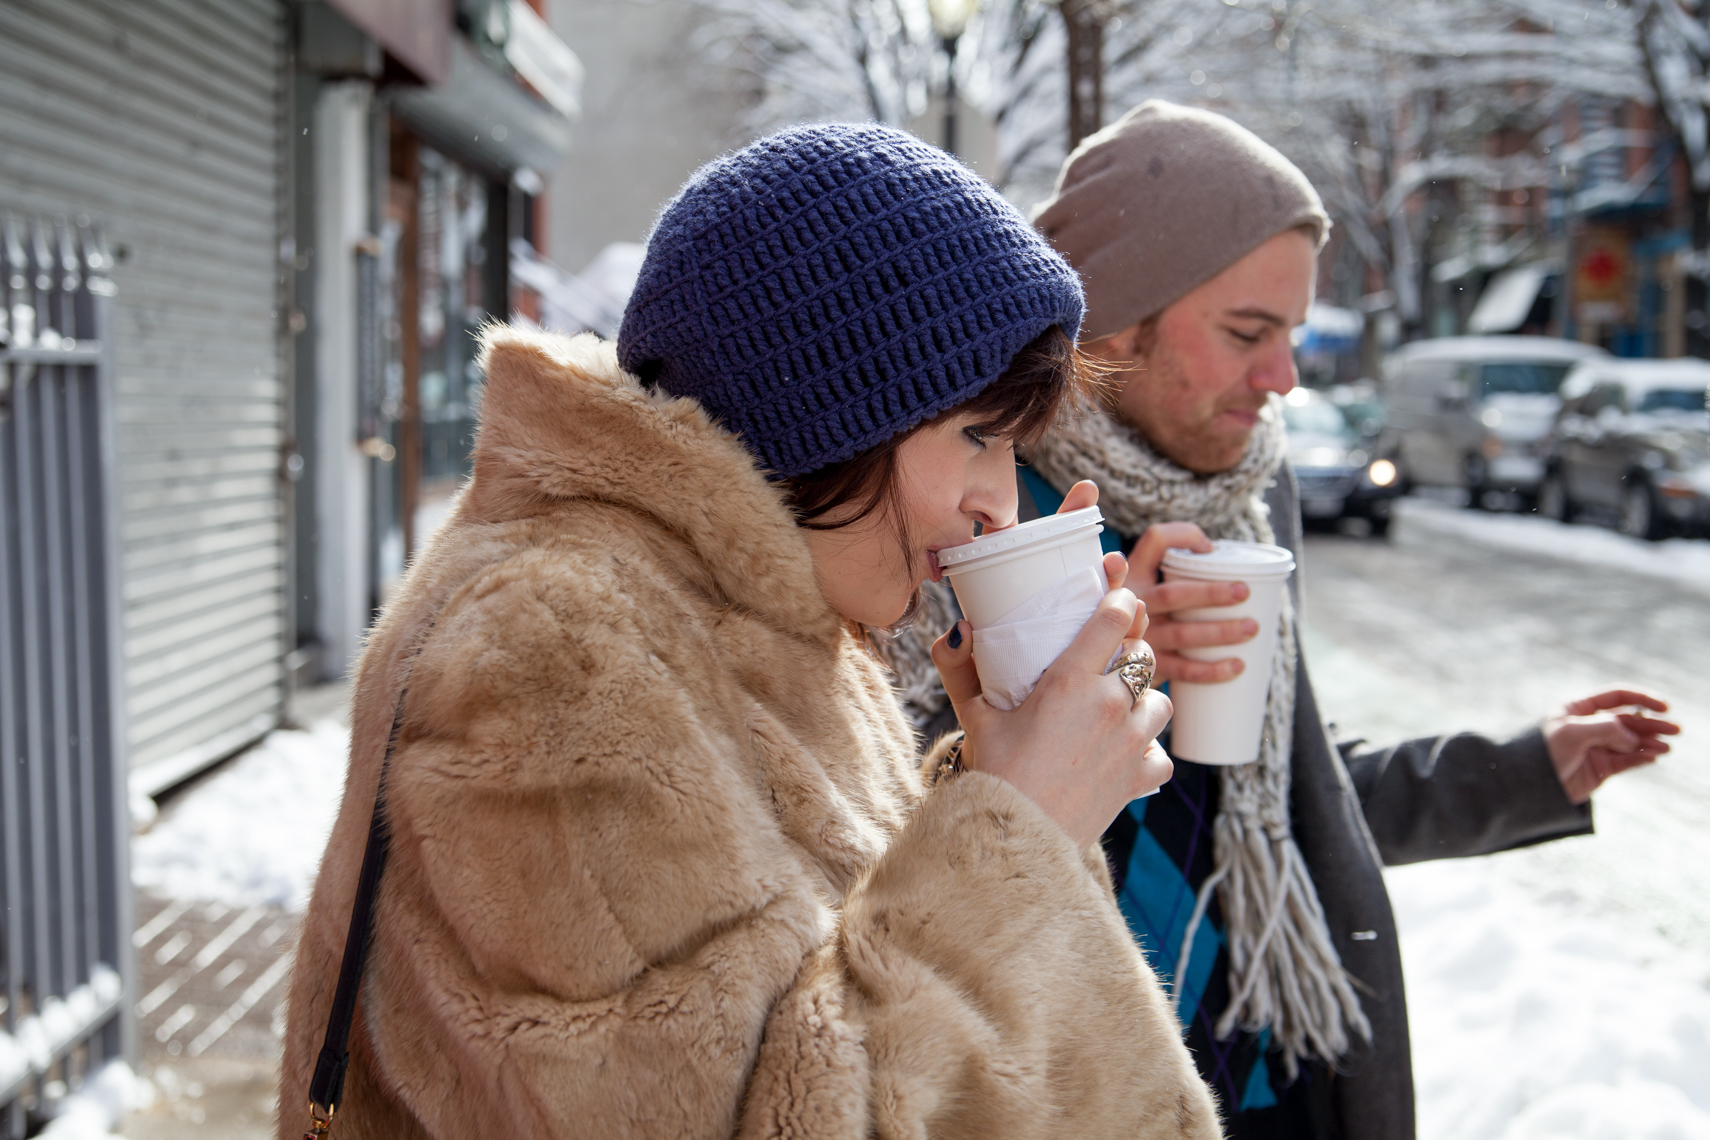 Chic young woman in a knitted hat and fur coat, two friends, young man with scarf, sipping coffee in Manhattan, New York, NYC, advertising, lifestyle photographer, NYC Photographer, Chicago, Nashville, photographer